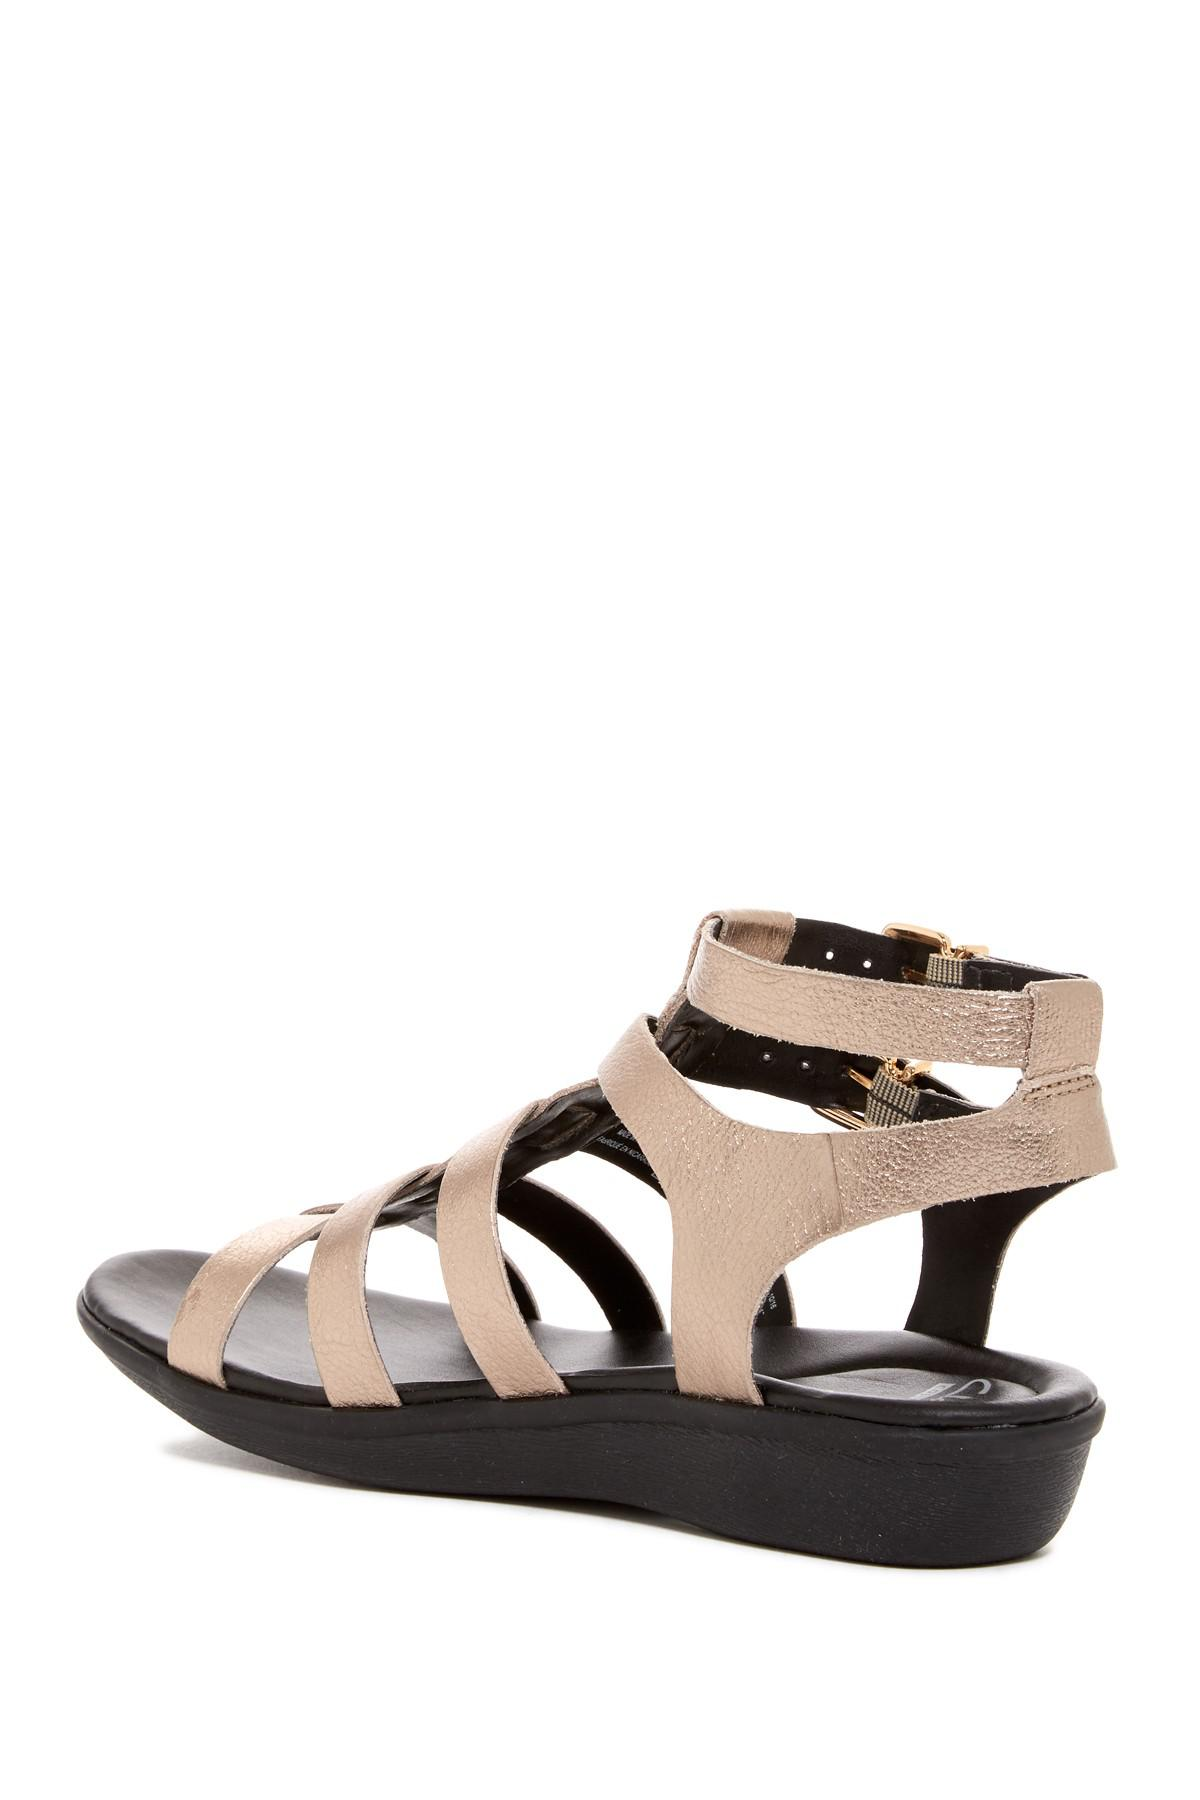 2ab5f46774b Gallery. Previously sold at  Nordstrom Rack · Women s Gladiator Sandals ...